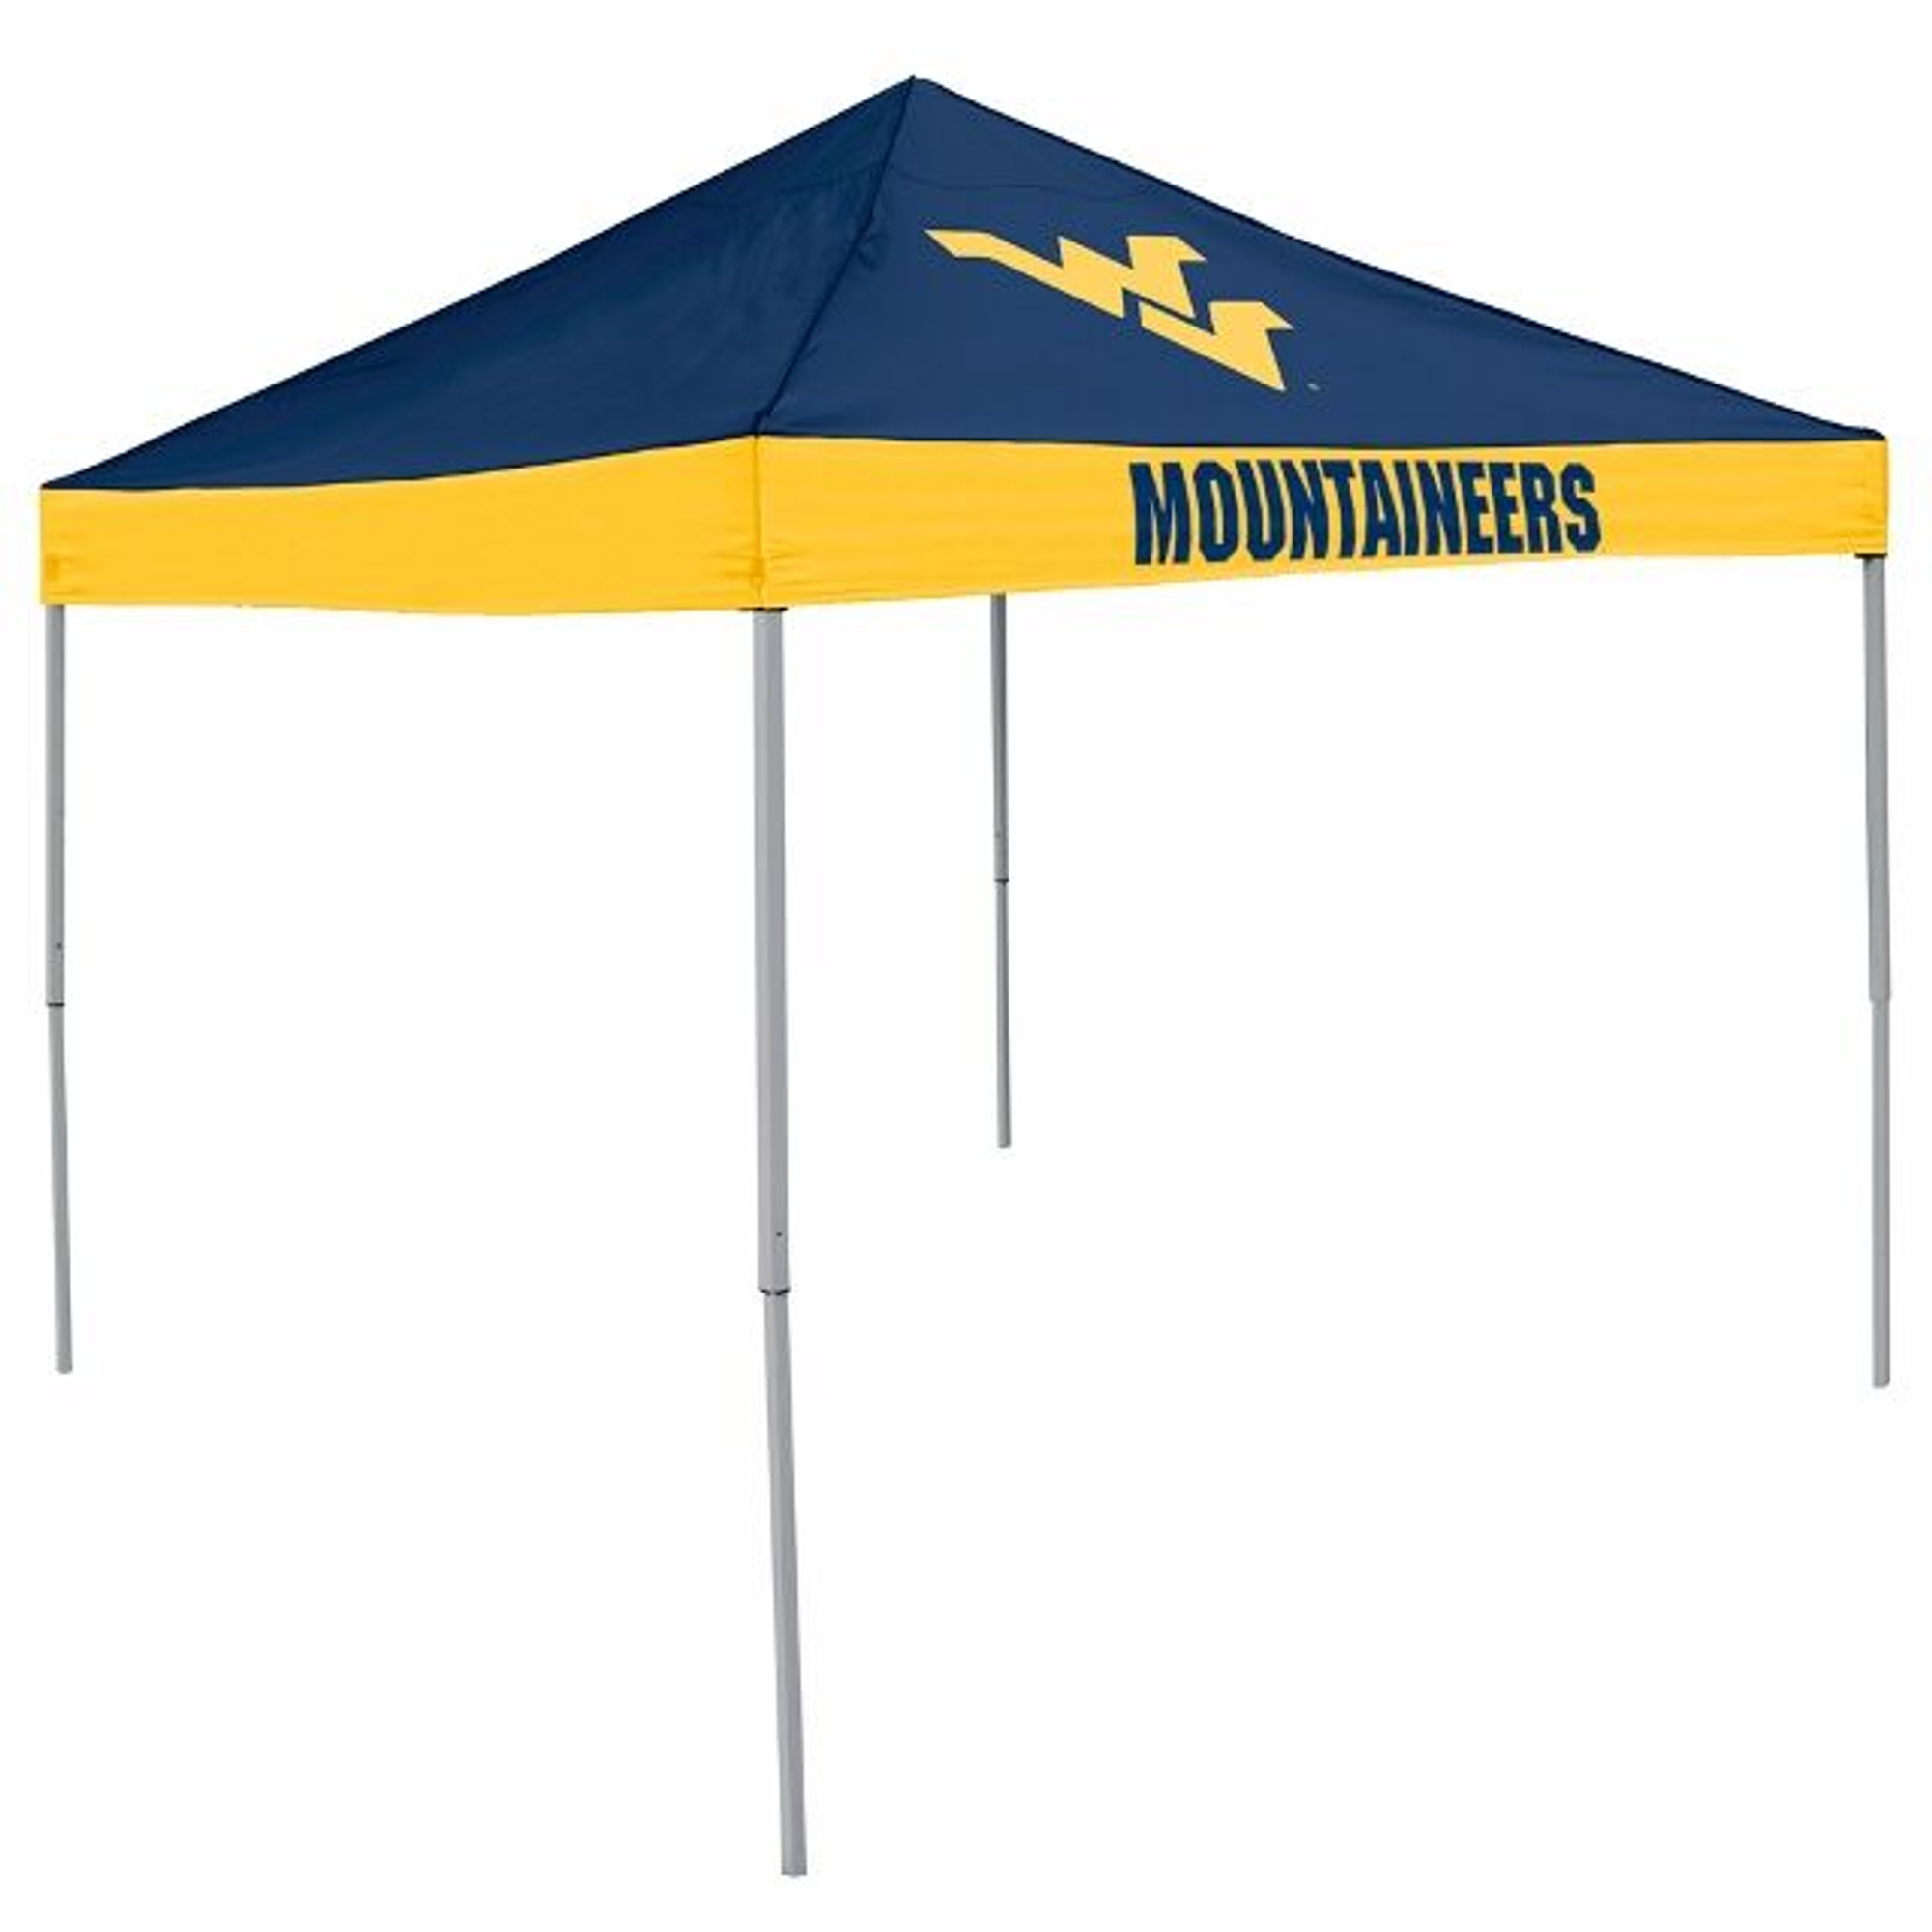 West Virginia Mountaineers Canopy Tailgate Tent